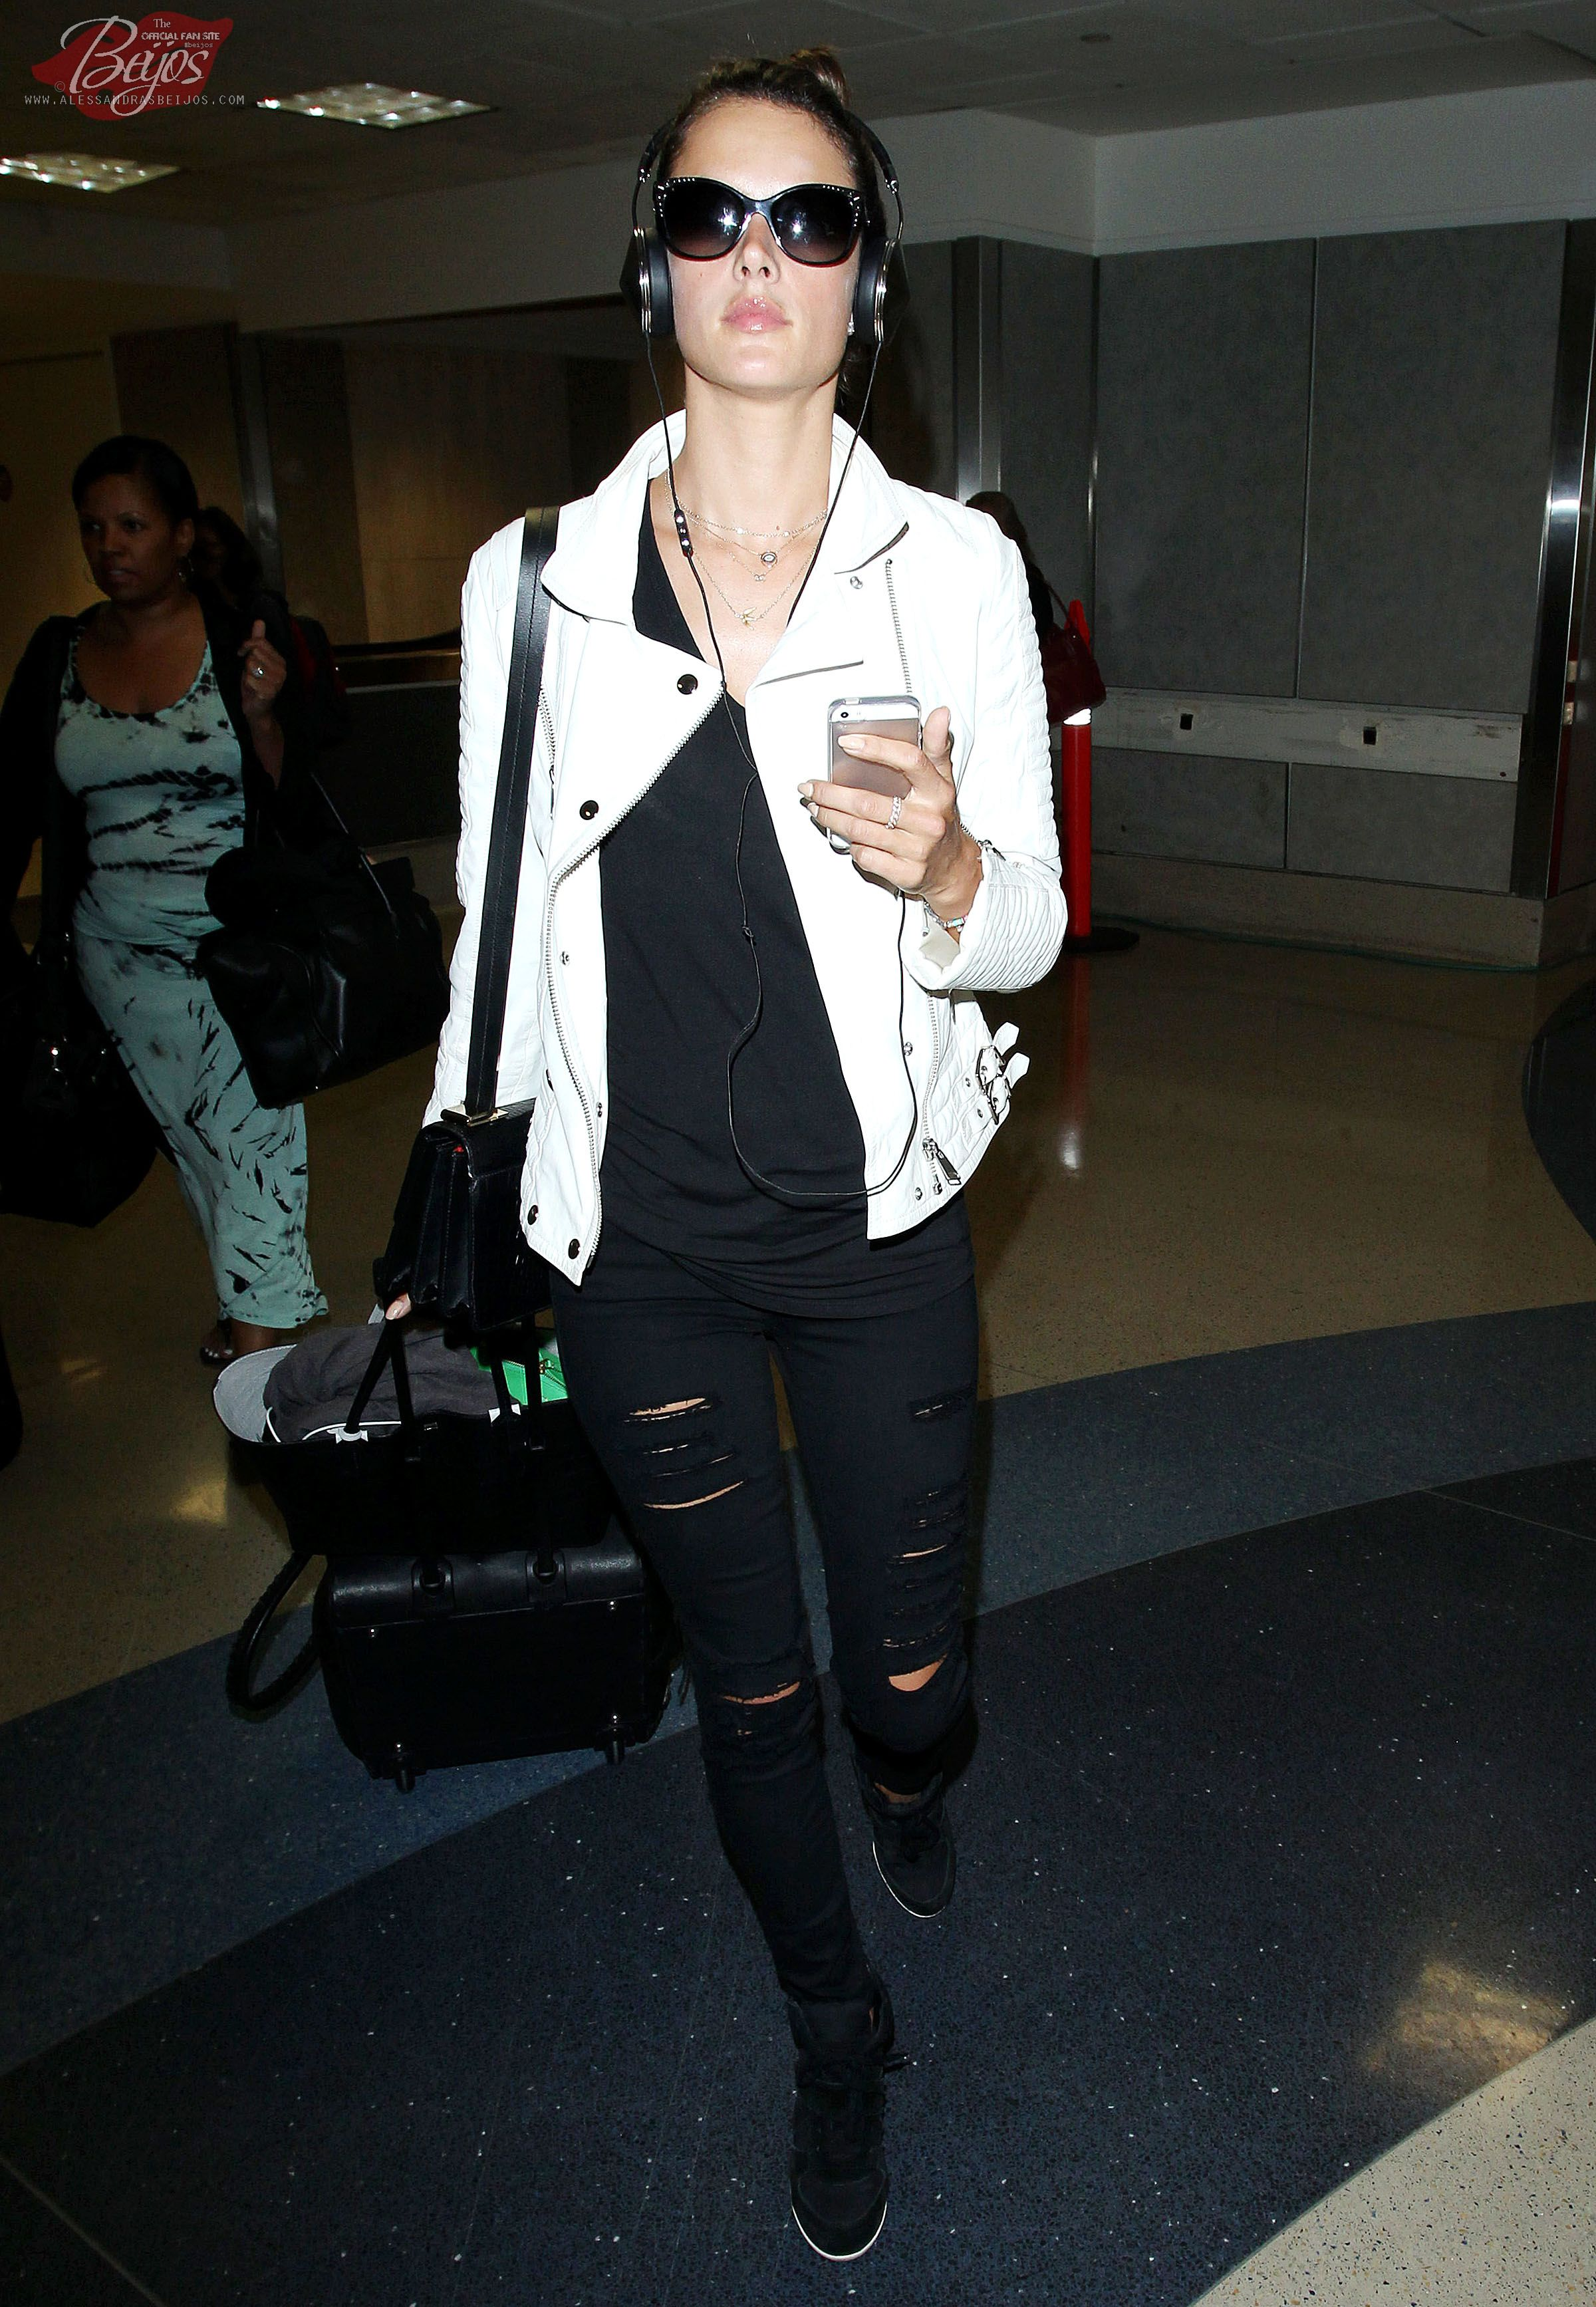 Alessandra Ambrosio Arriving At Lax International Airport In Los Angeles Ca May 29 2014 Alessandra Ambrosio Style Fashion Alessandra Ambrosio